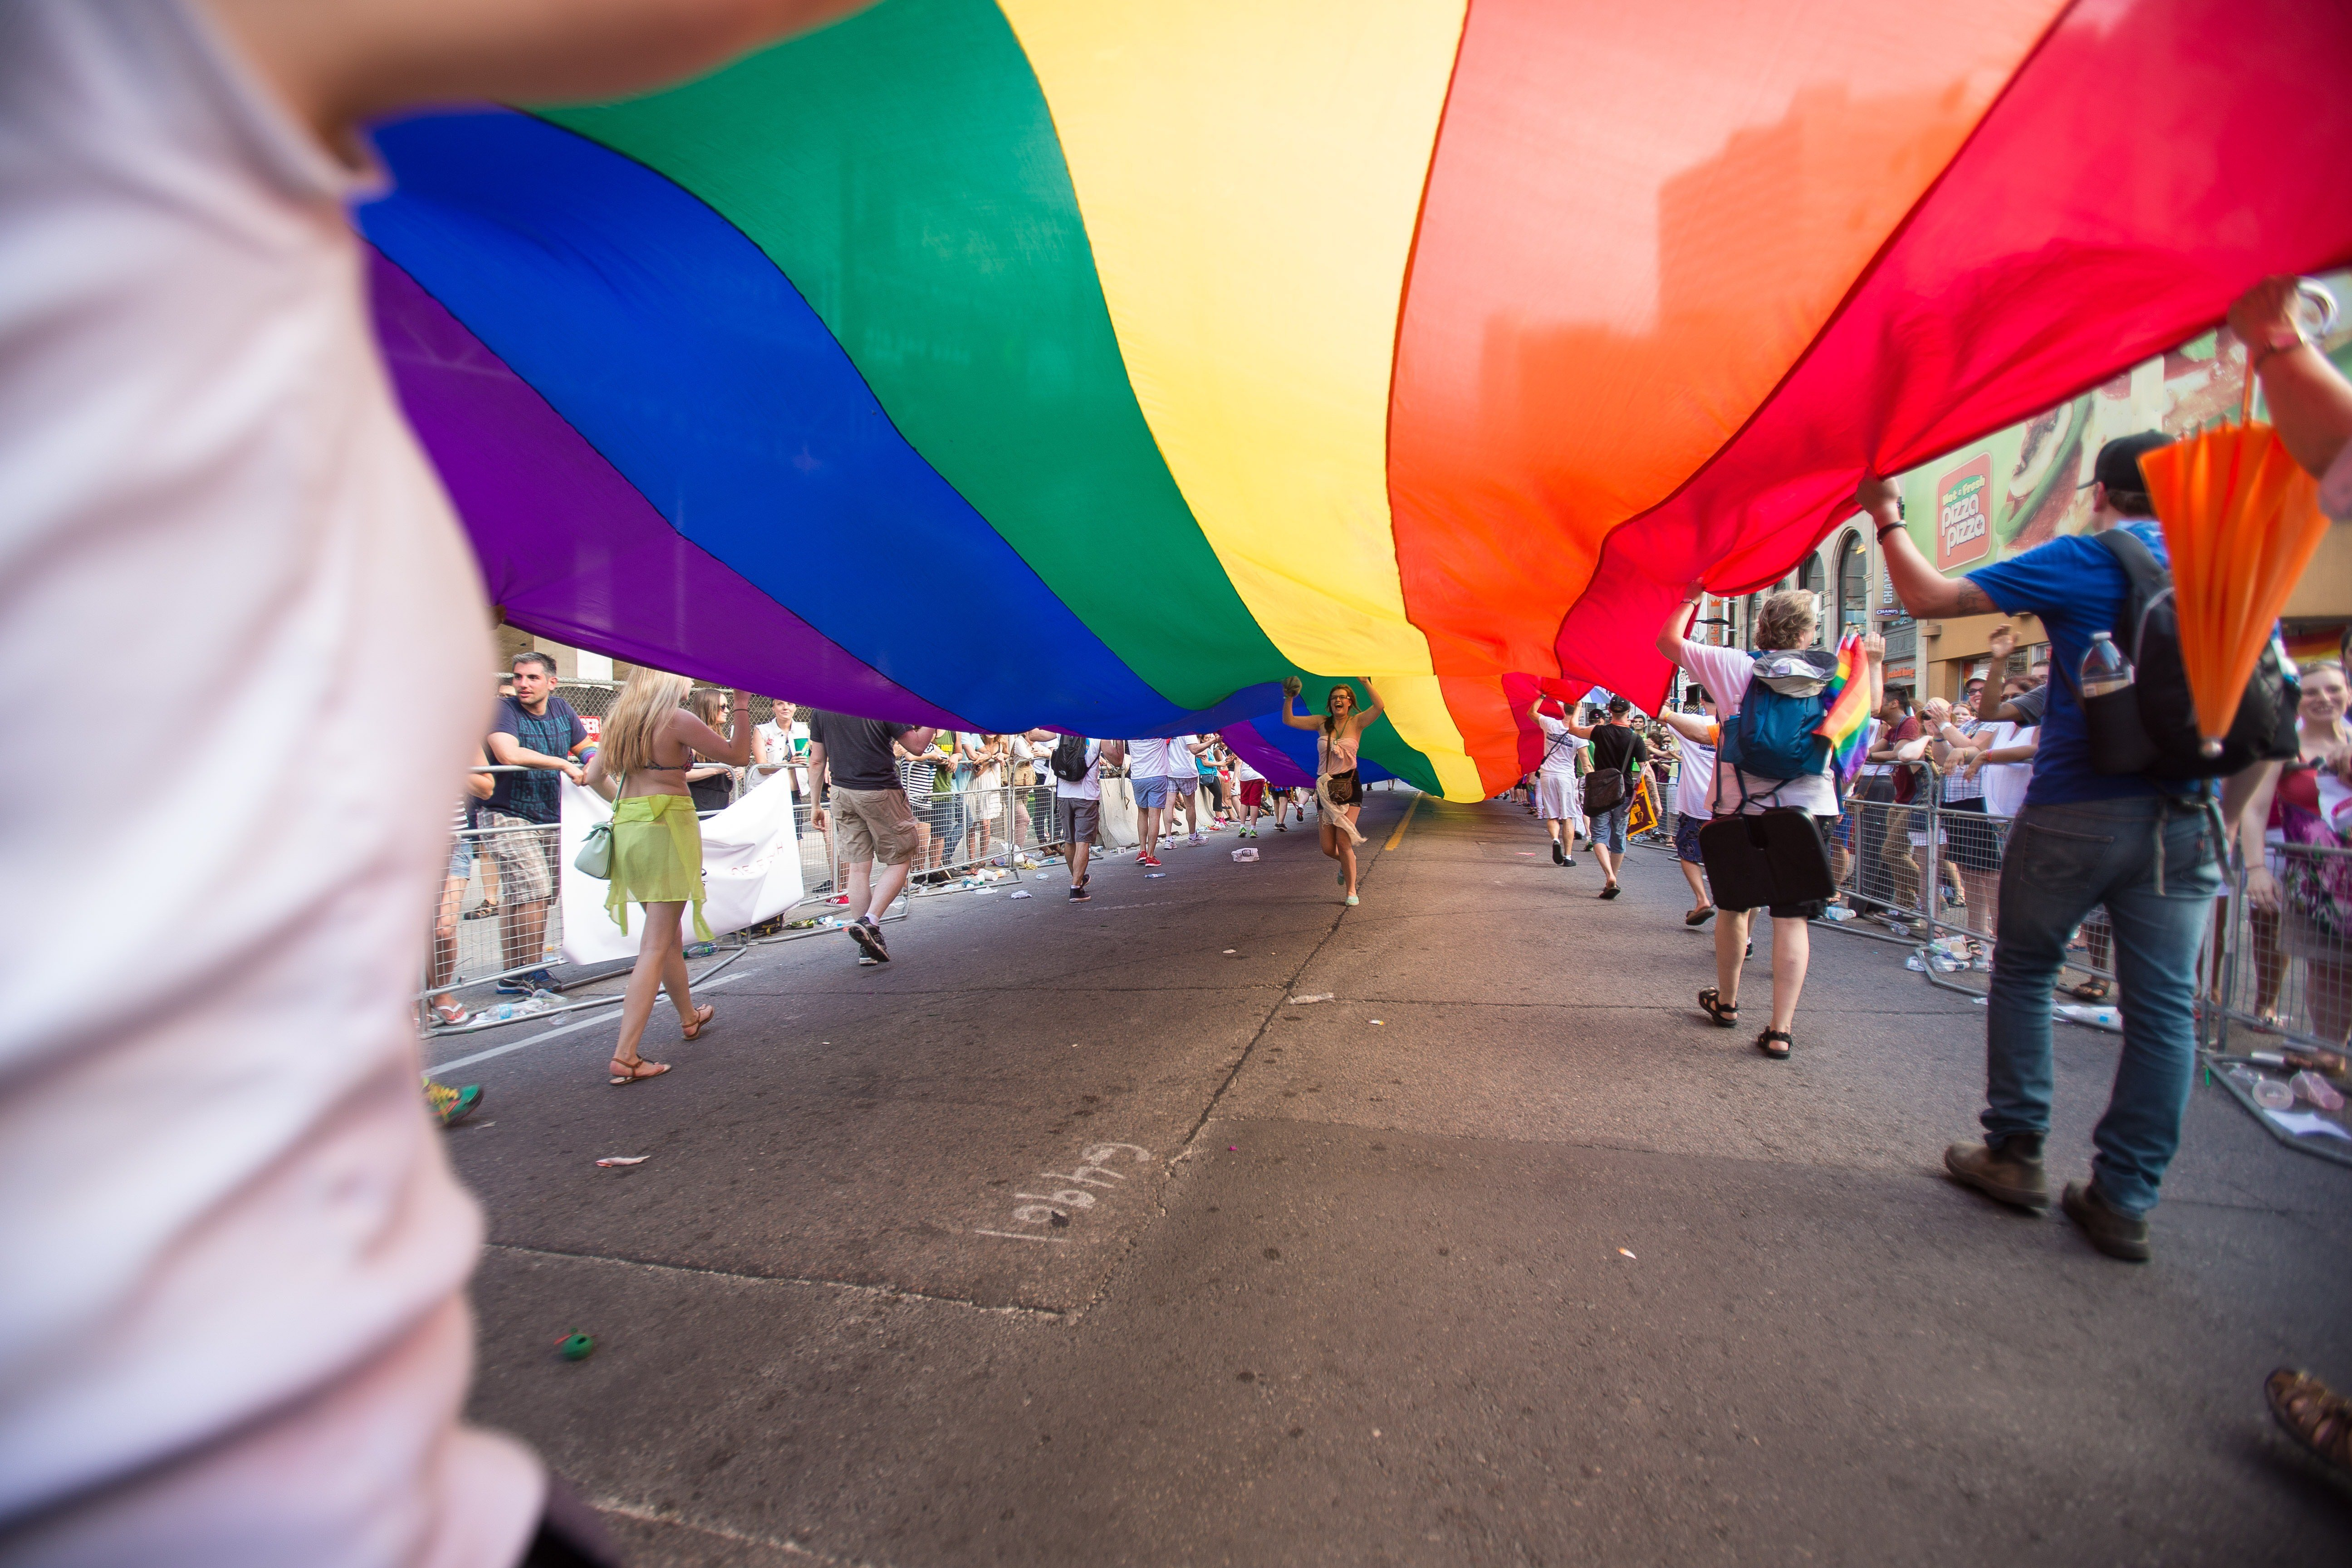 A woman runs under a giant rainbow flag during the WorldPride 2014 Parade in Toronto, Canada,